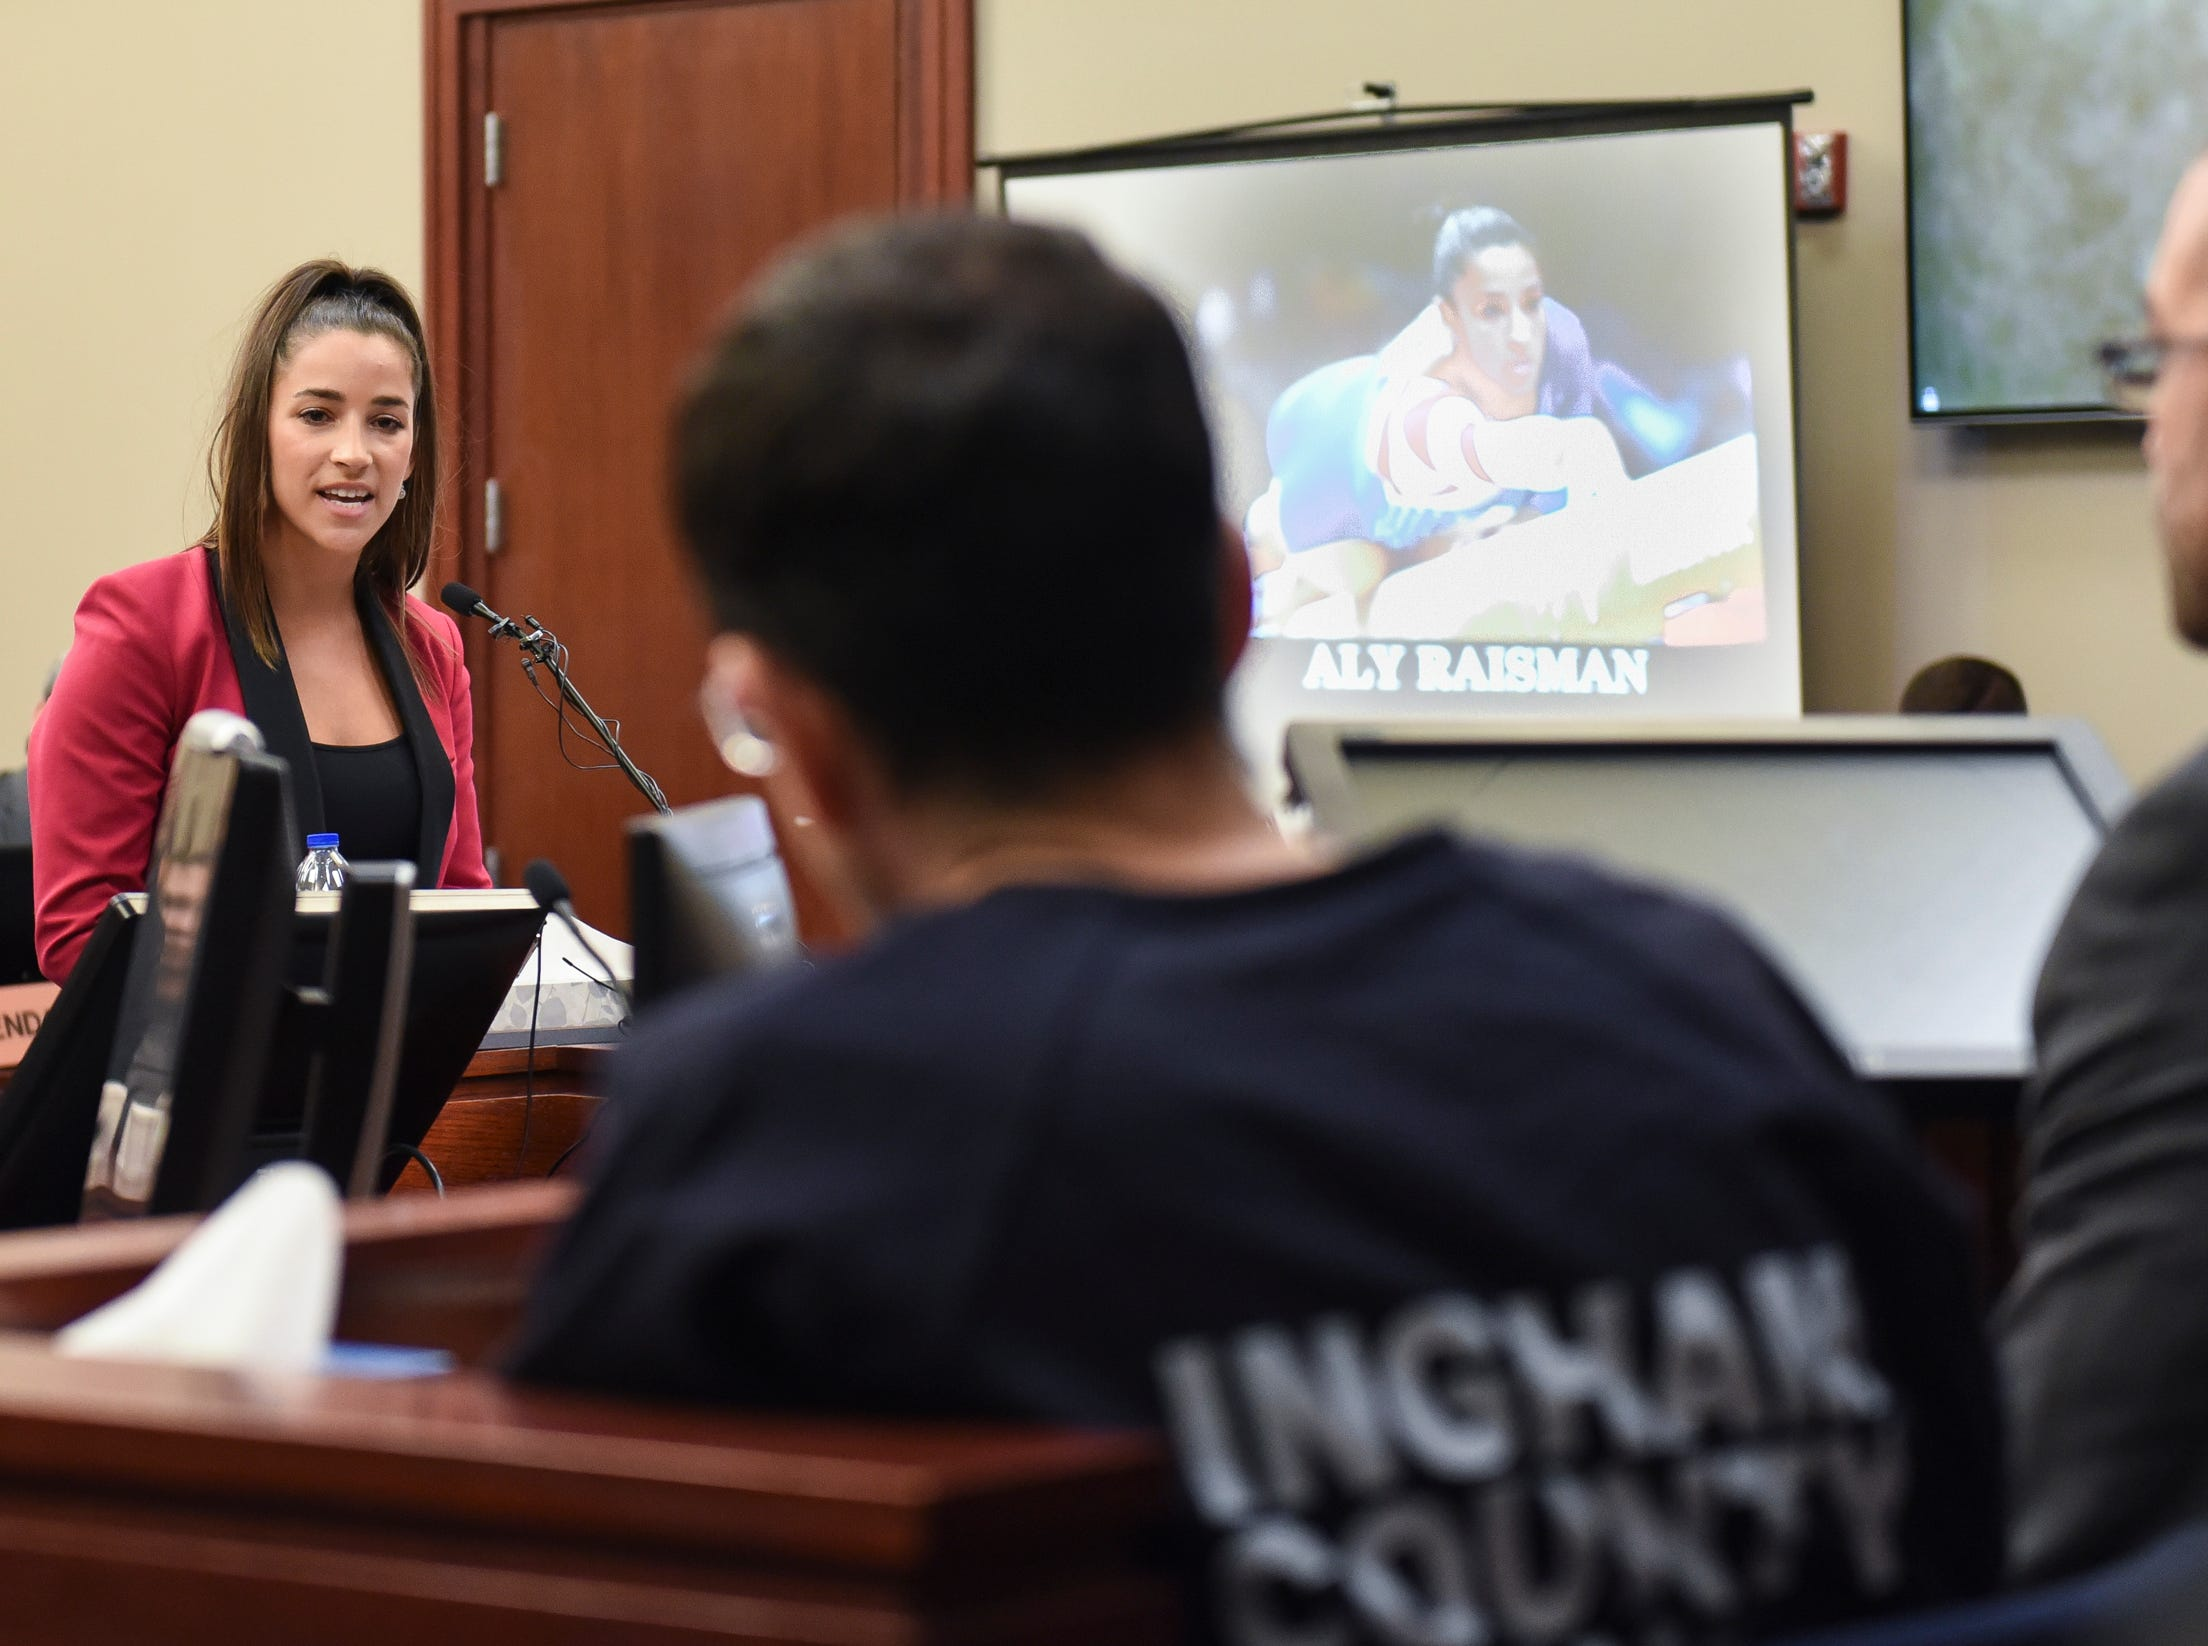 Jan. 19, 2018: Former Olympian Aly Raisman confronts Larry Nassar in Circuit Judge Rosemarie Aquilina's courtroom during the fourth day of victim impact statements. Nassar, the former sports medicine doctor, pled guilty to seven counts of sexual assault in Ingham County, and three in Eaton County.